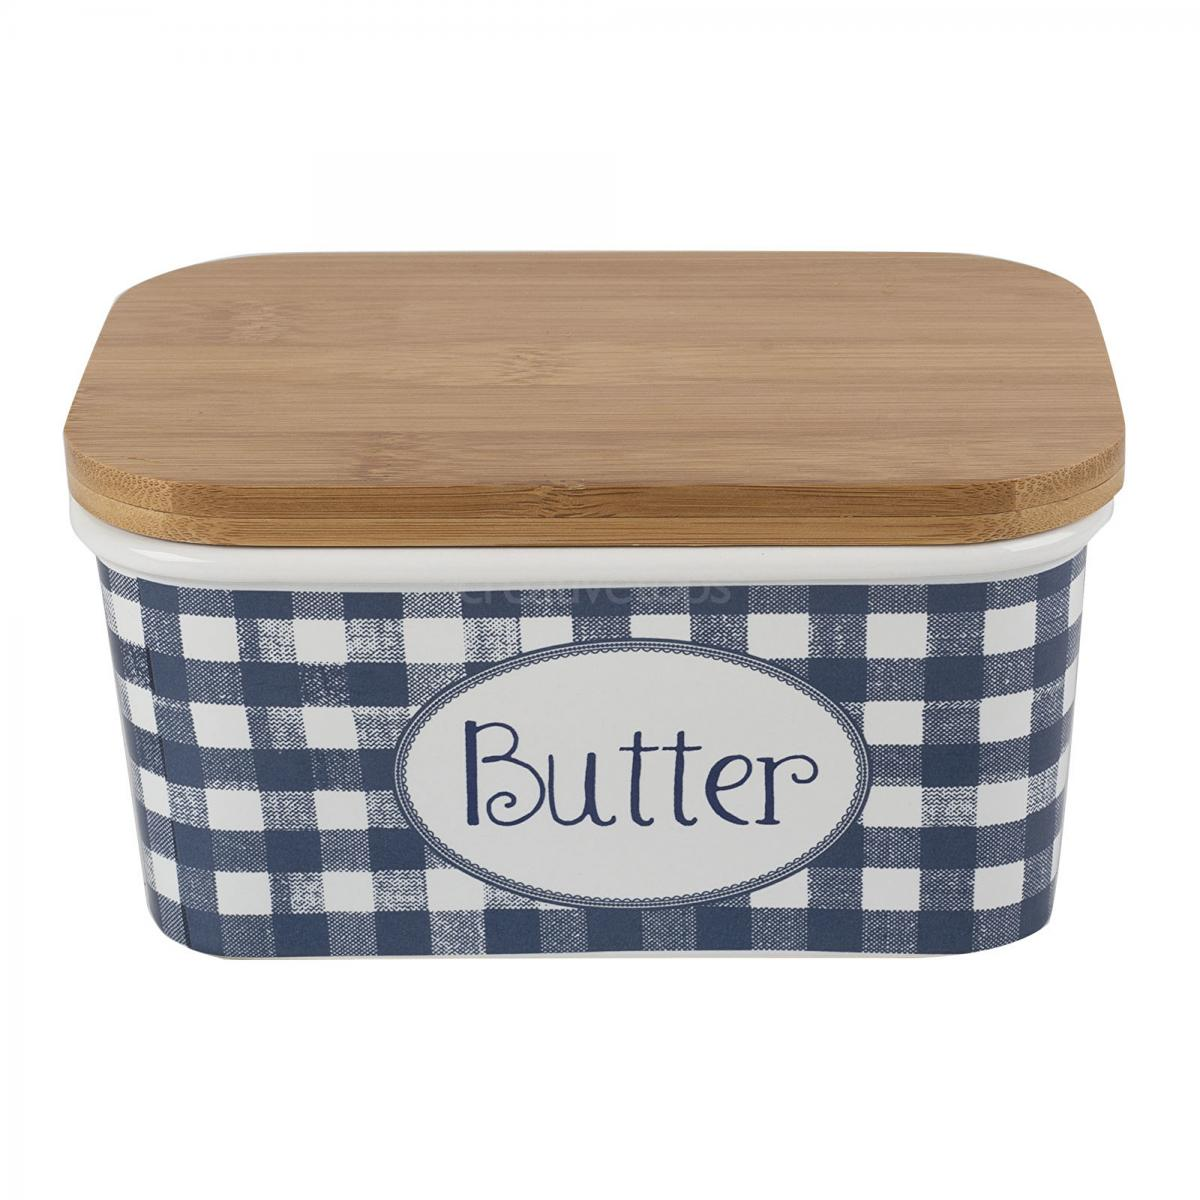 Vintage Indigo large Butter Dish – Now Only £12.00